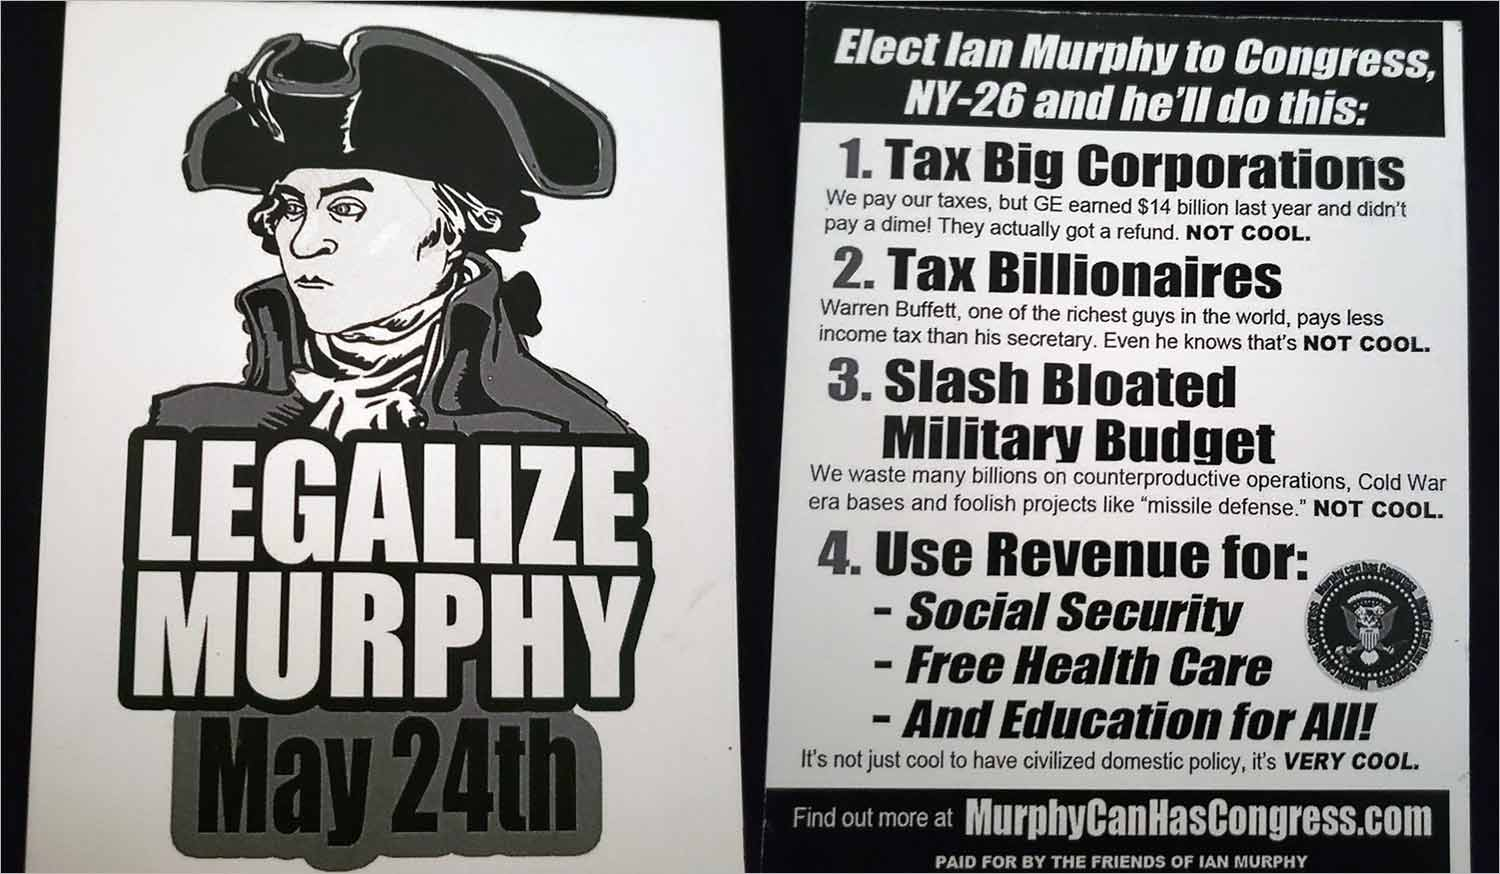 Ian Murphy for Congress